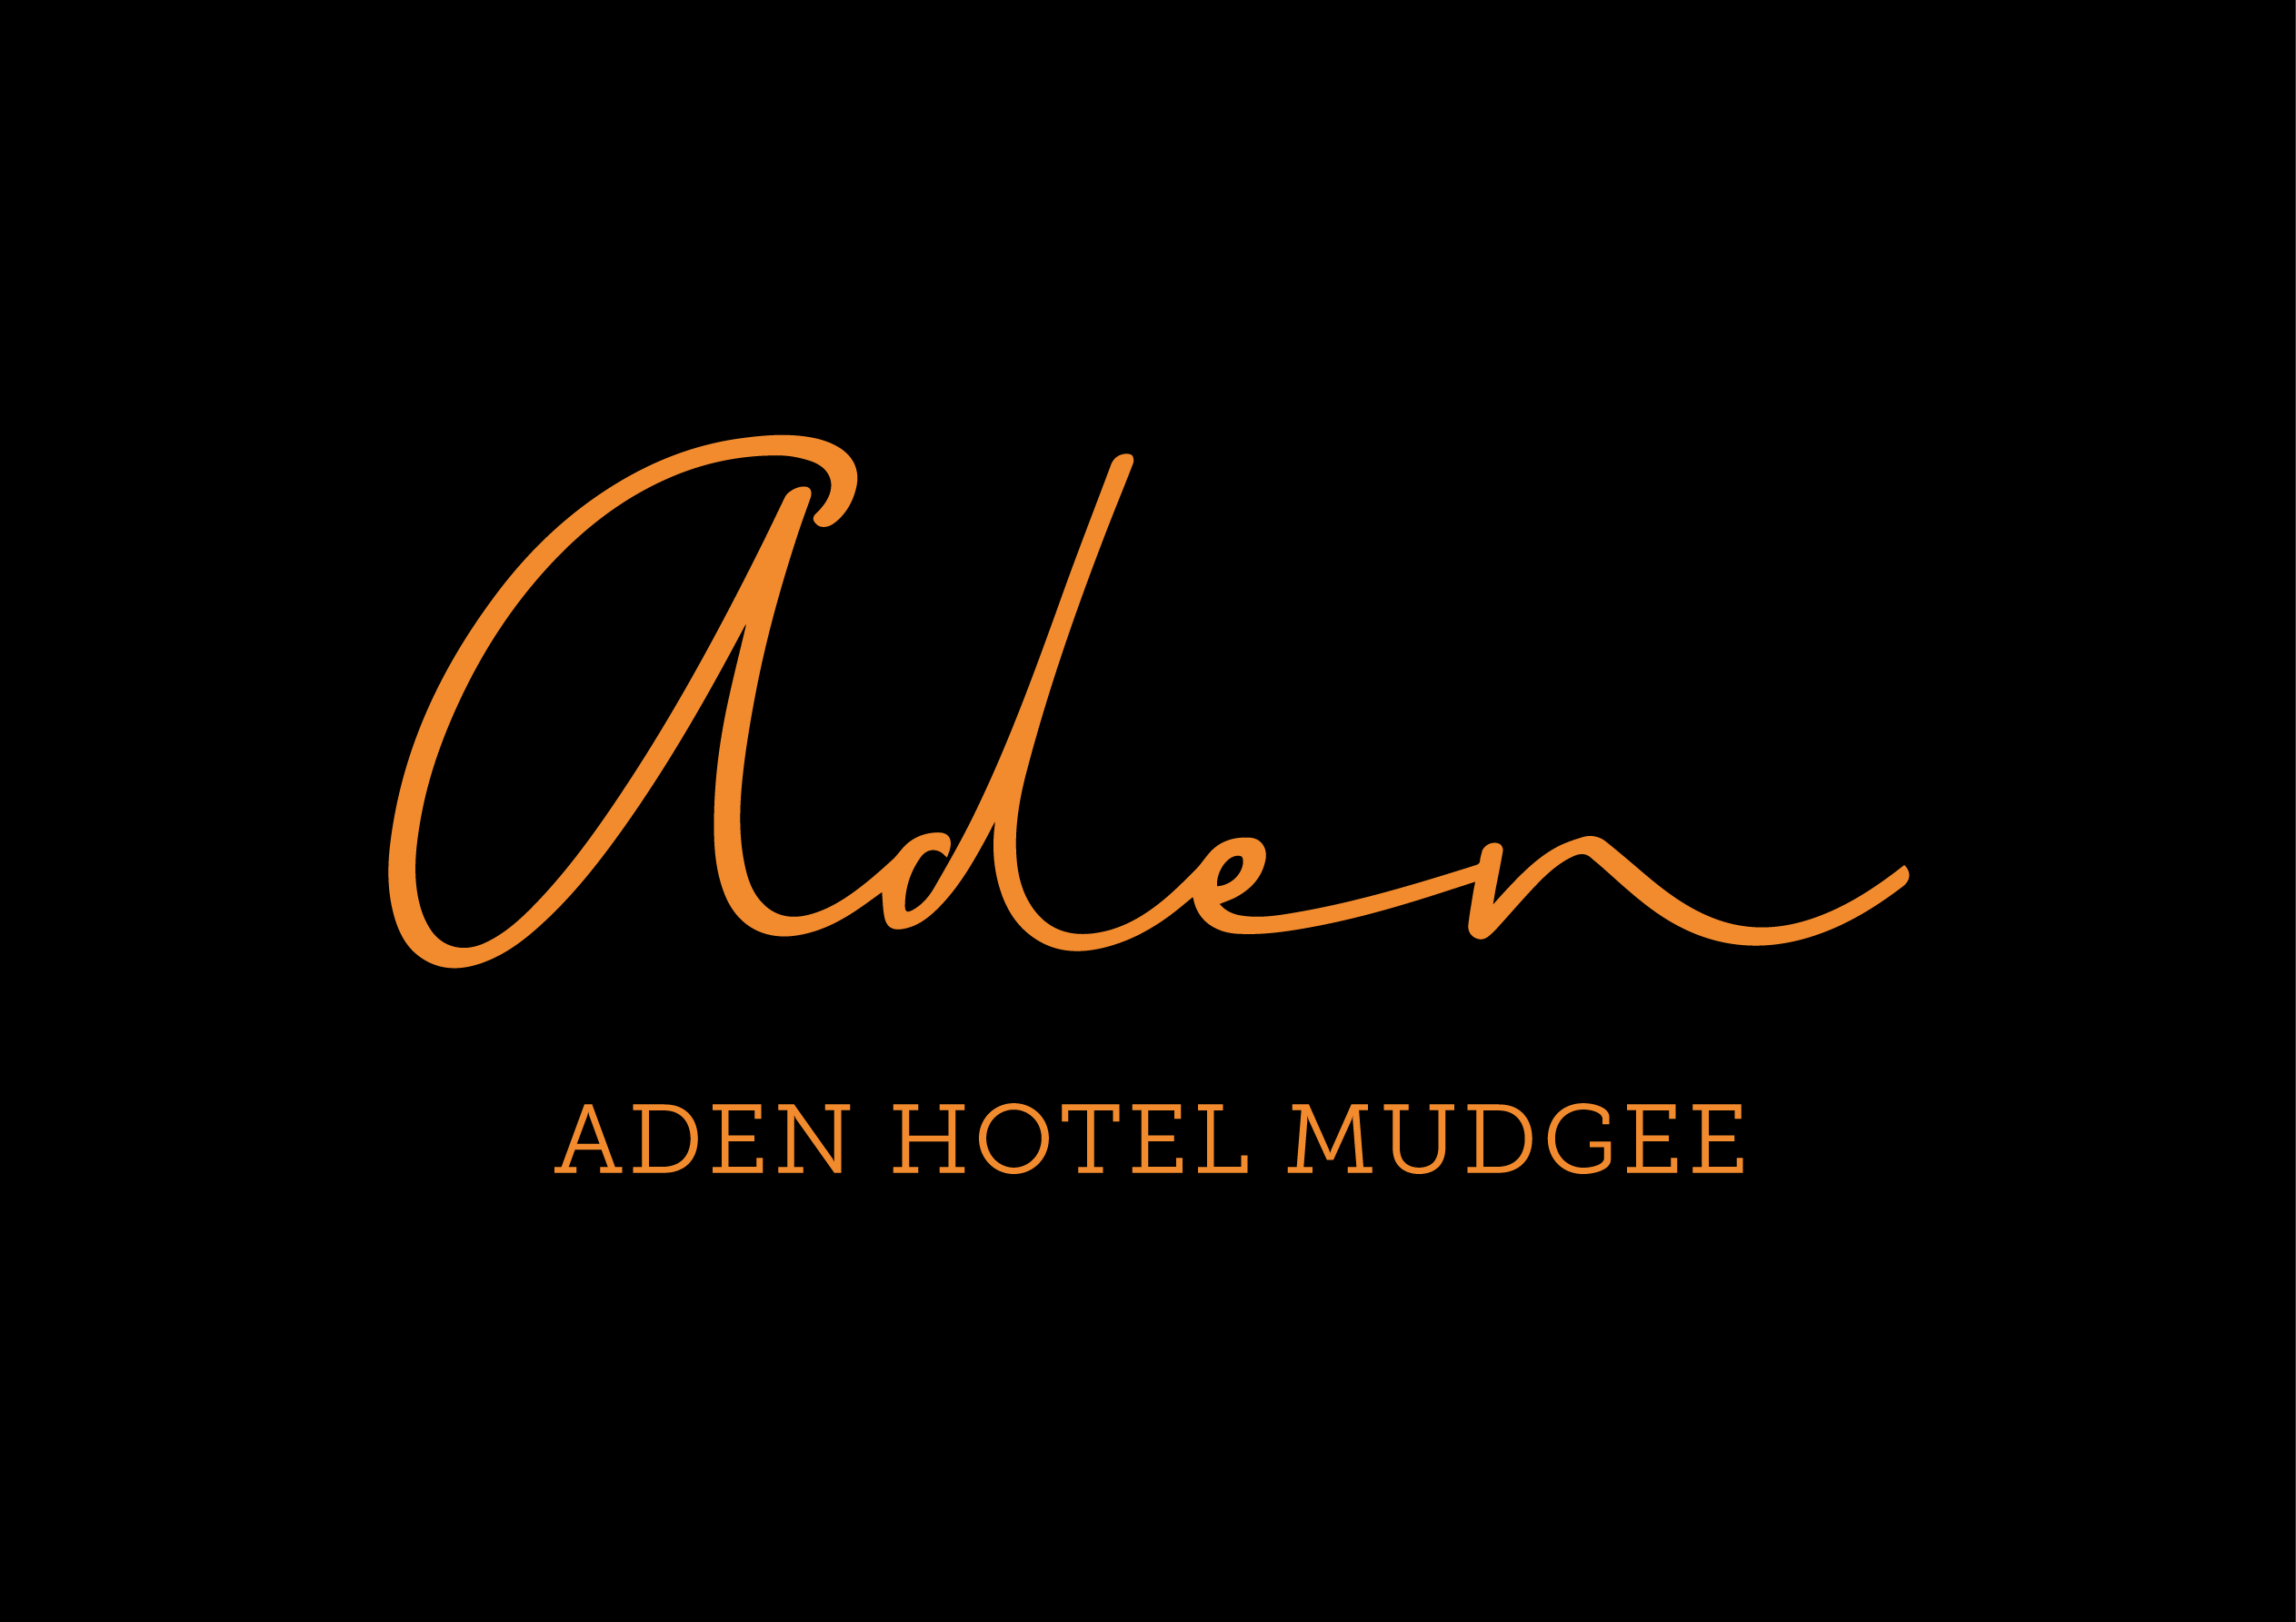 Comfort Inn Aden Hotel Mudgee Logo and Images